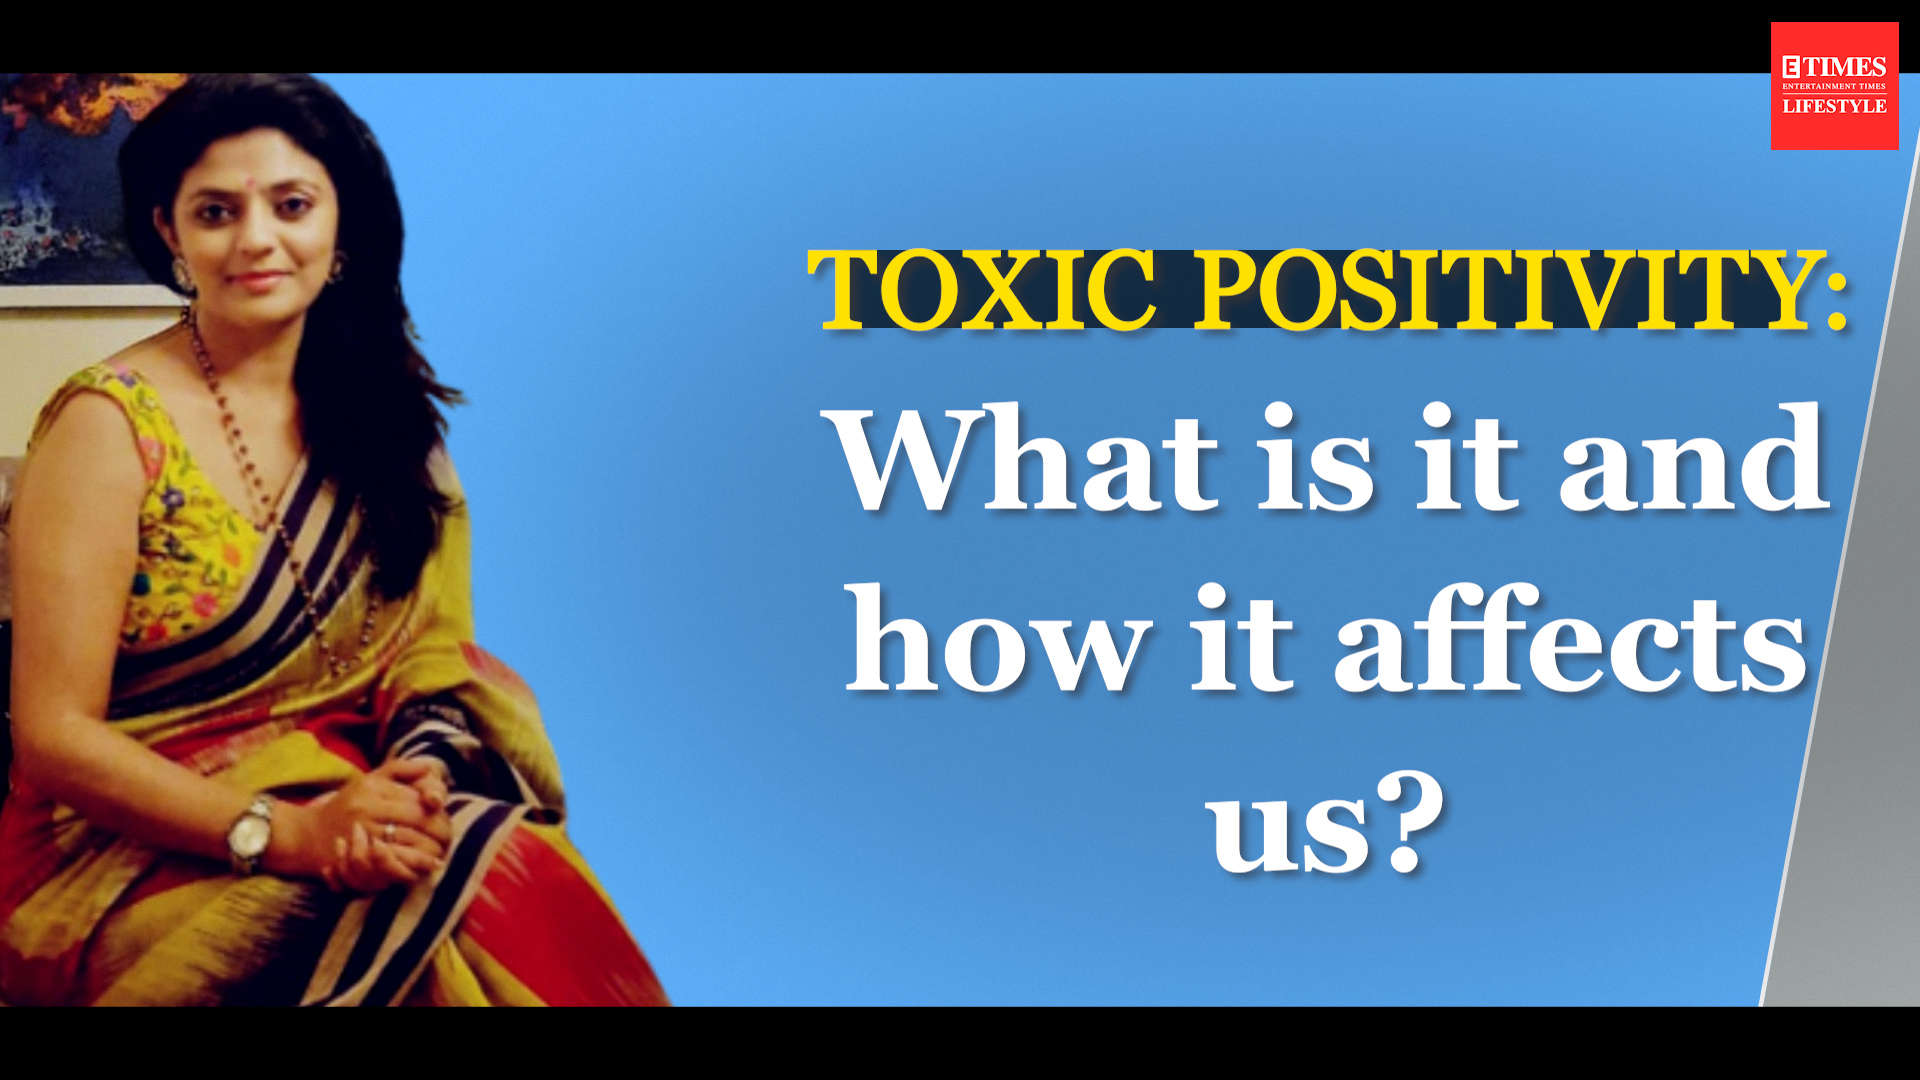 lifelineseries-toxic-positivity-what-is-it-and-how-it-affects-us